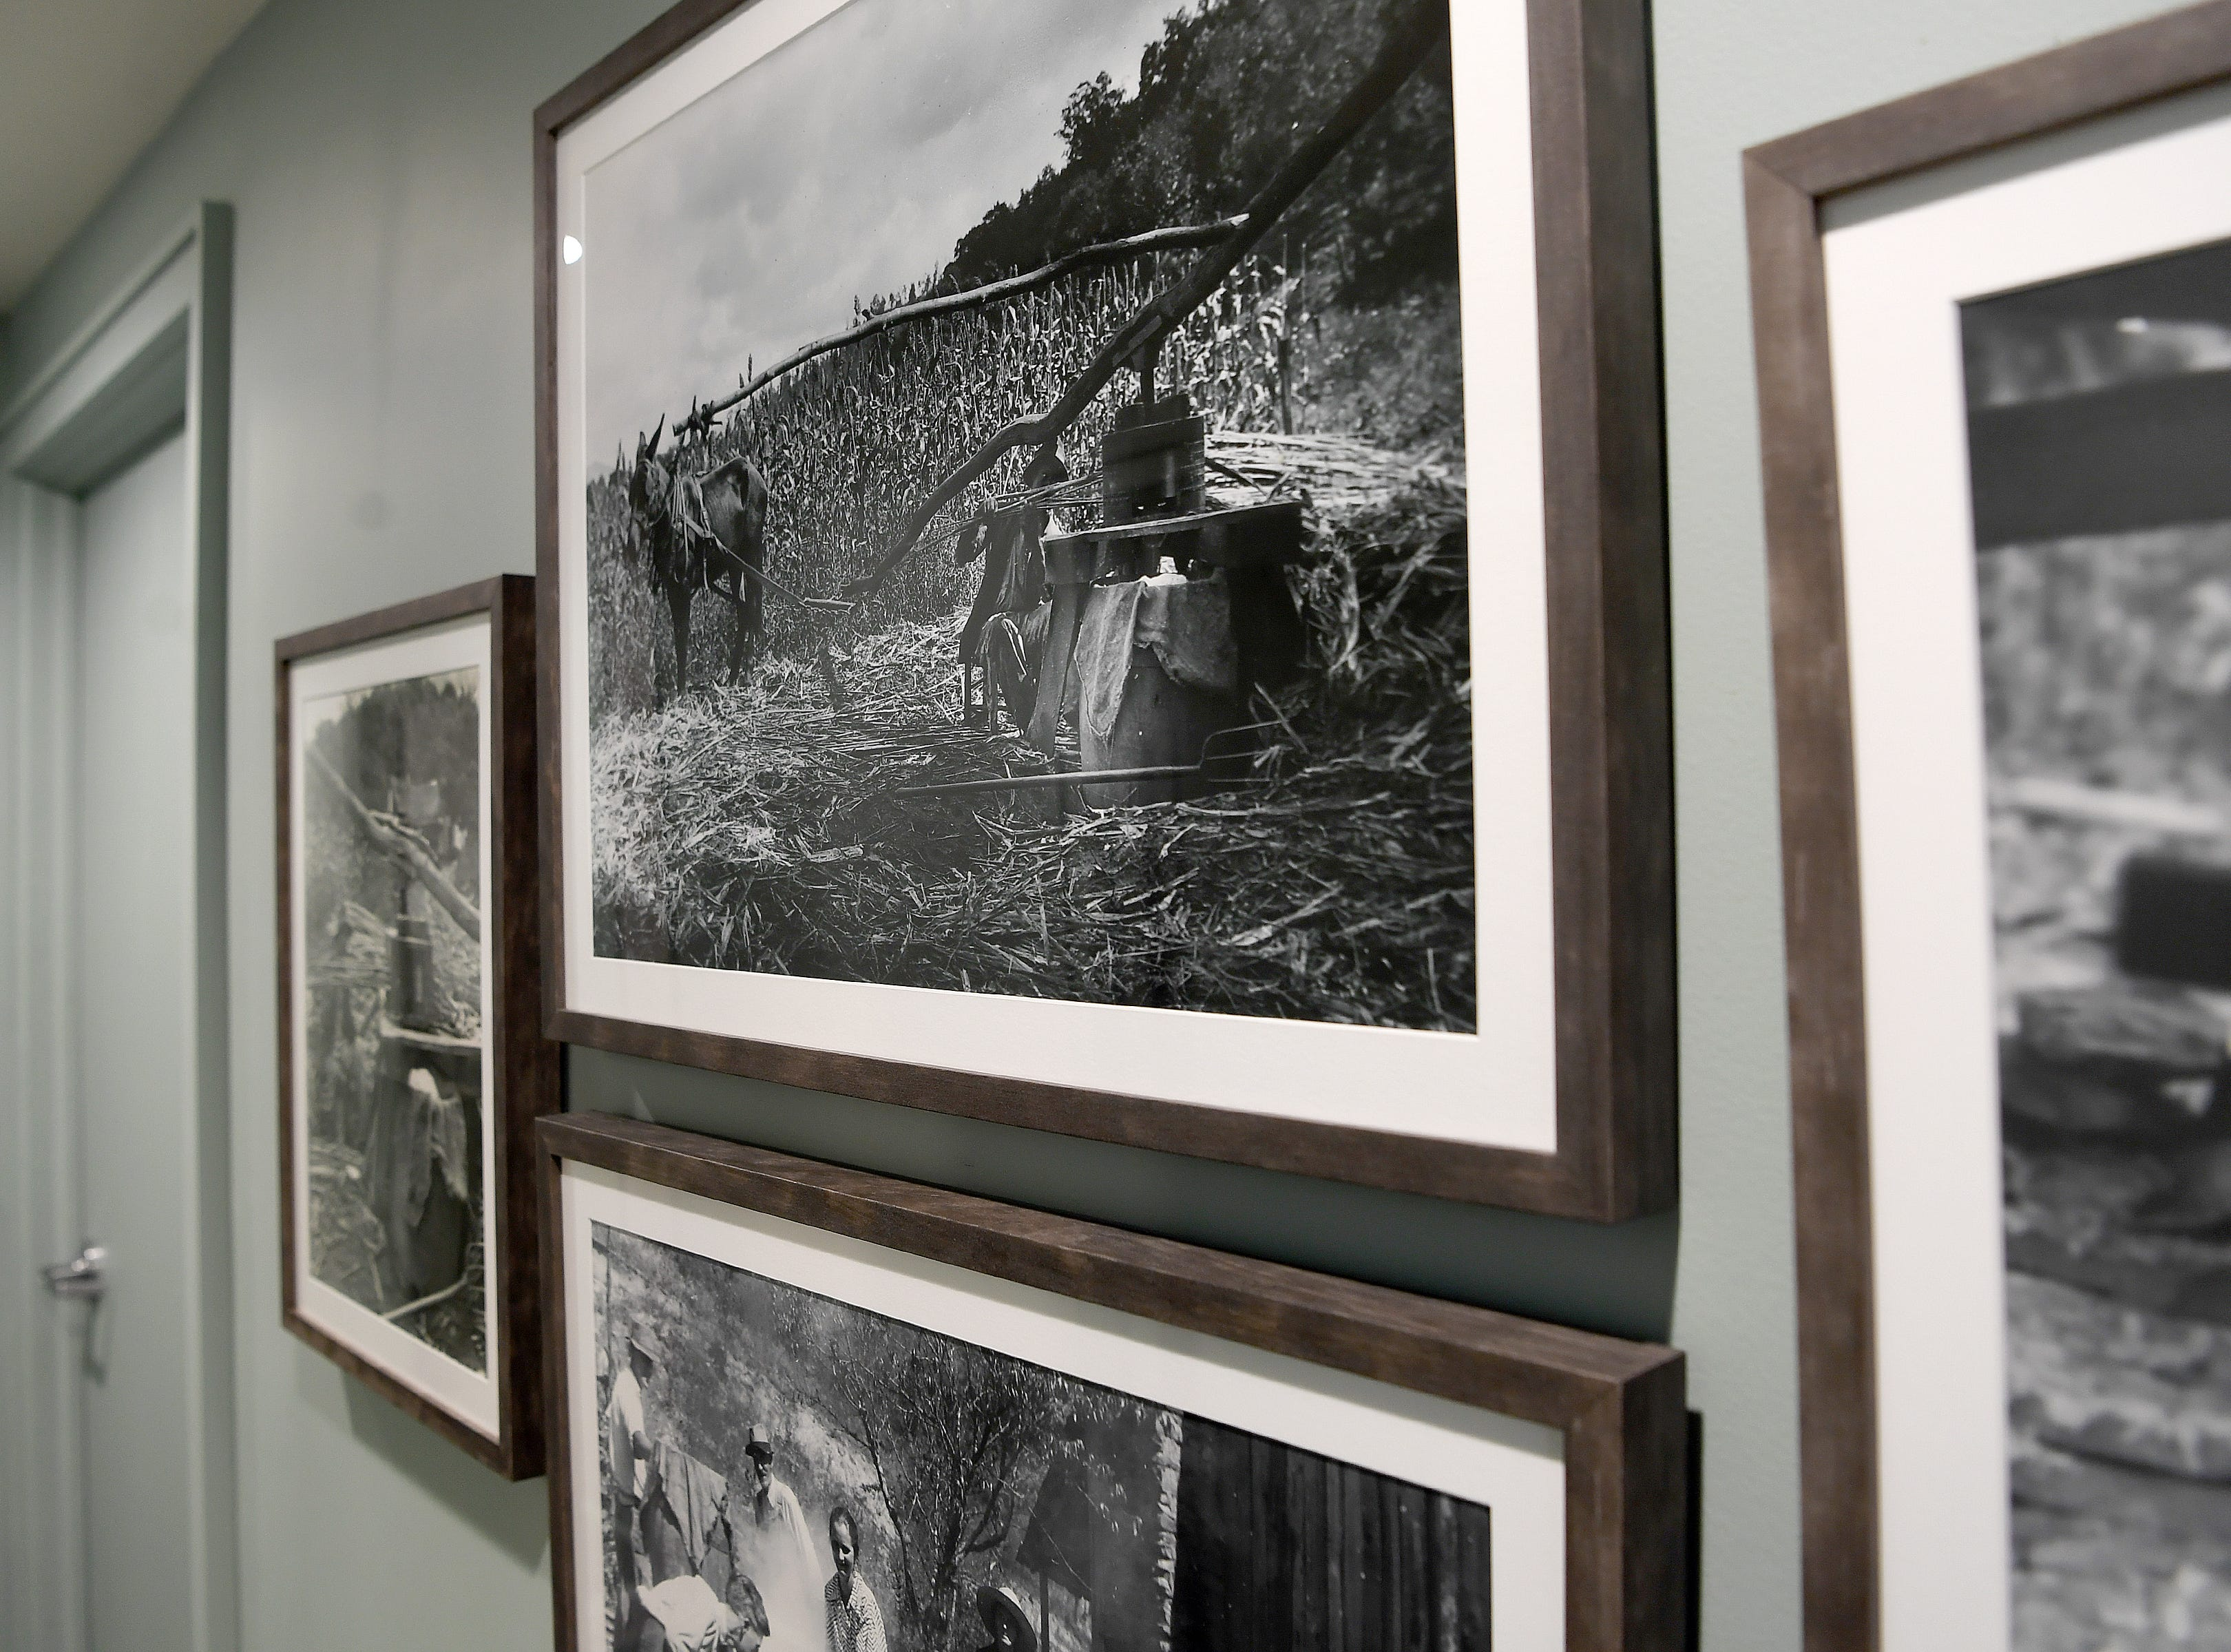 Photographs of sorghum being harvested in Black Mountain are on display at the soon-to-open Button & Co. Bagels on Lexington Avenue. Sorghum has been substituted in the New York-style recipe to give the bagels a Southern flair.